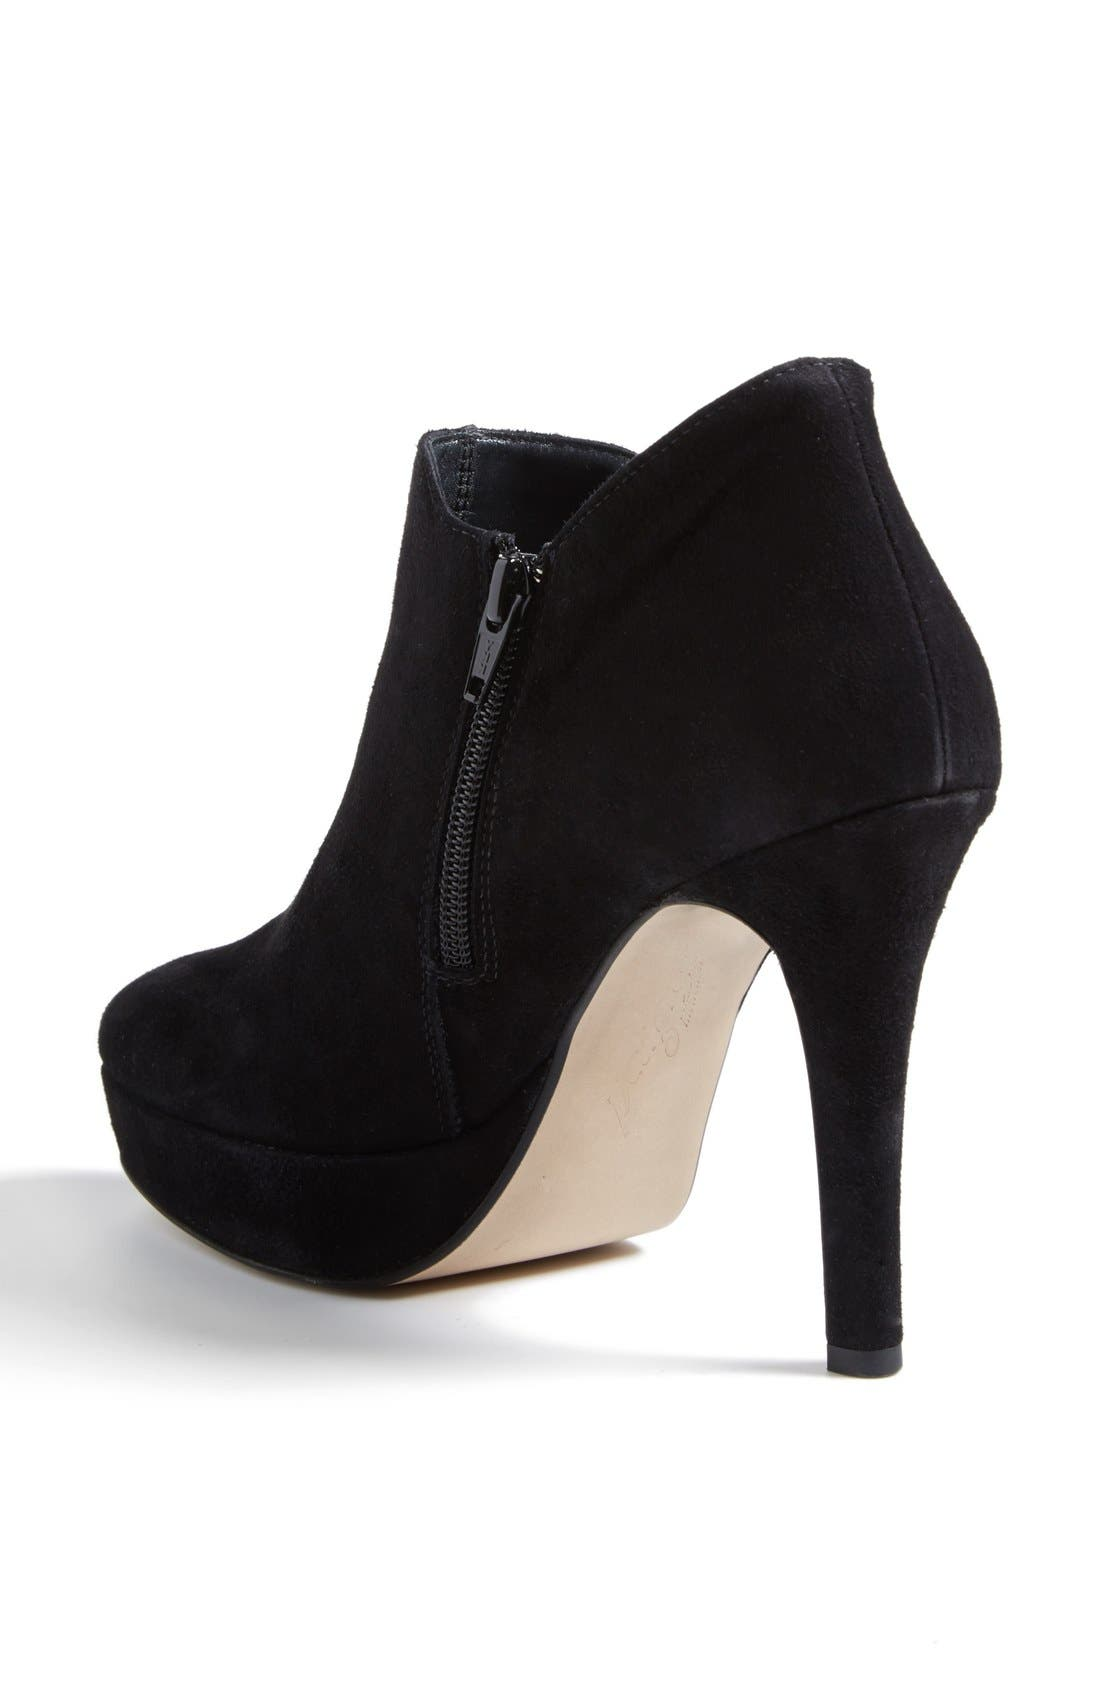 'Astaire' Suede Platform Bootie,                             Alternate thumbnail 2, color,                             002